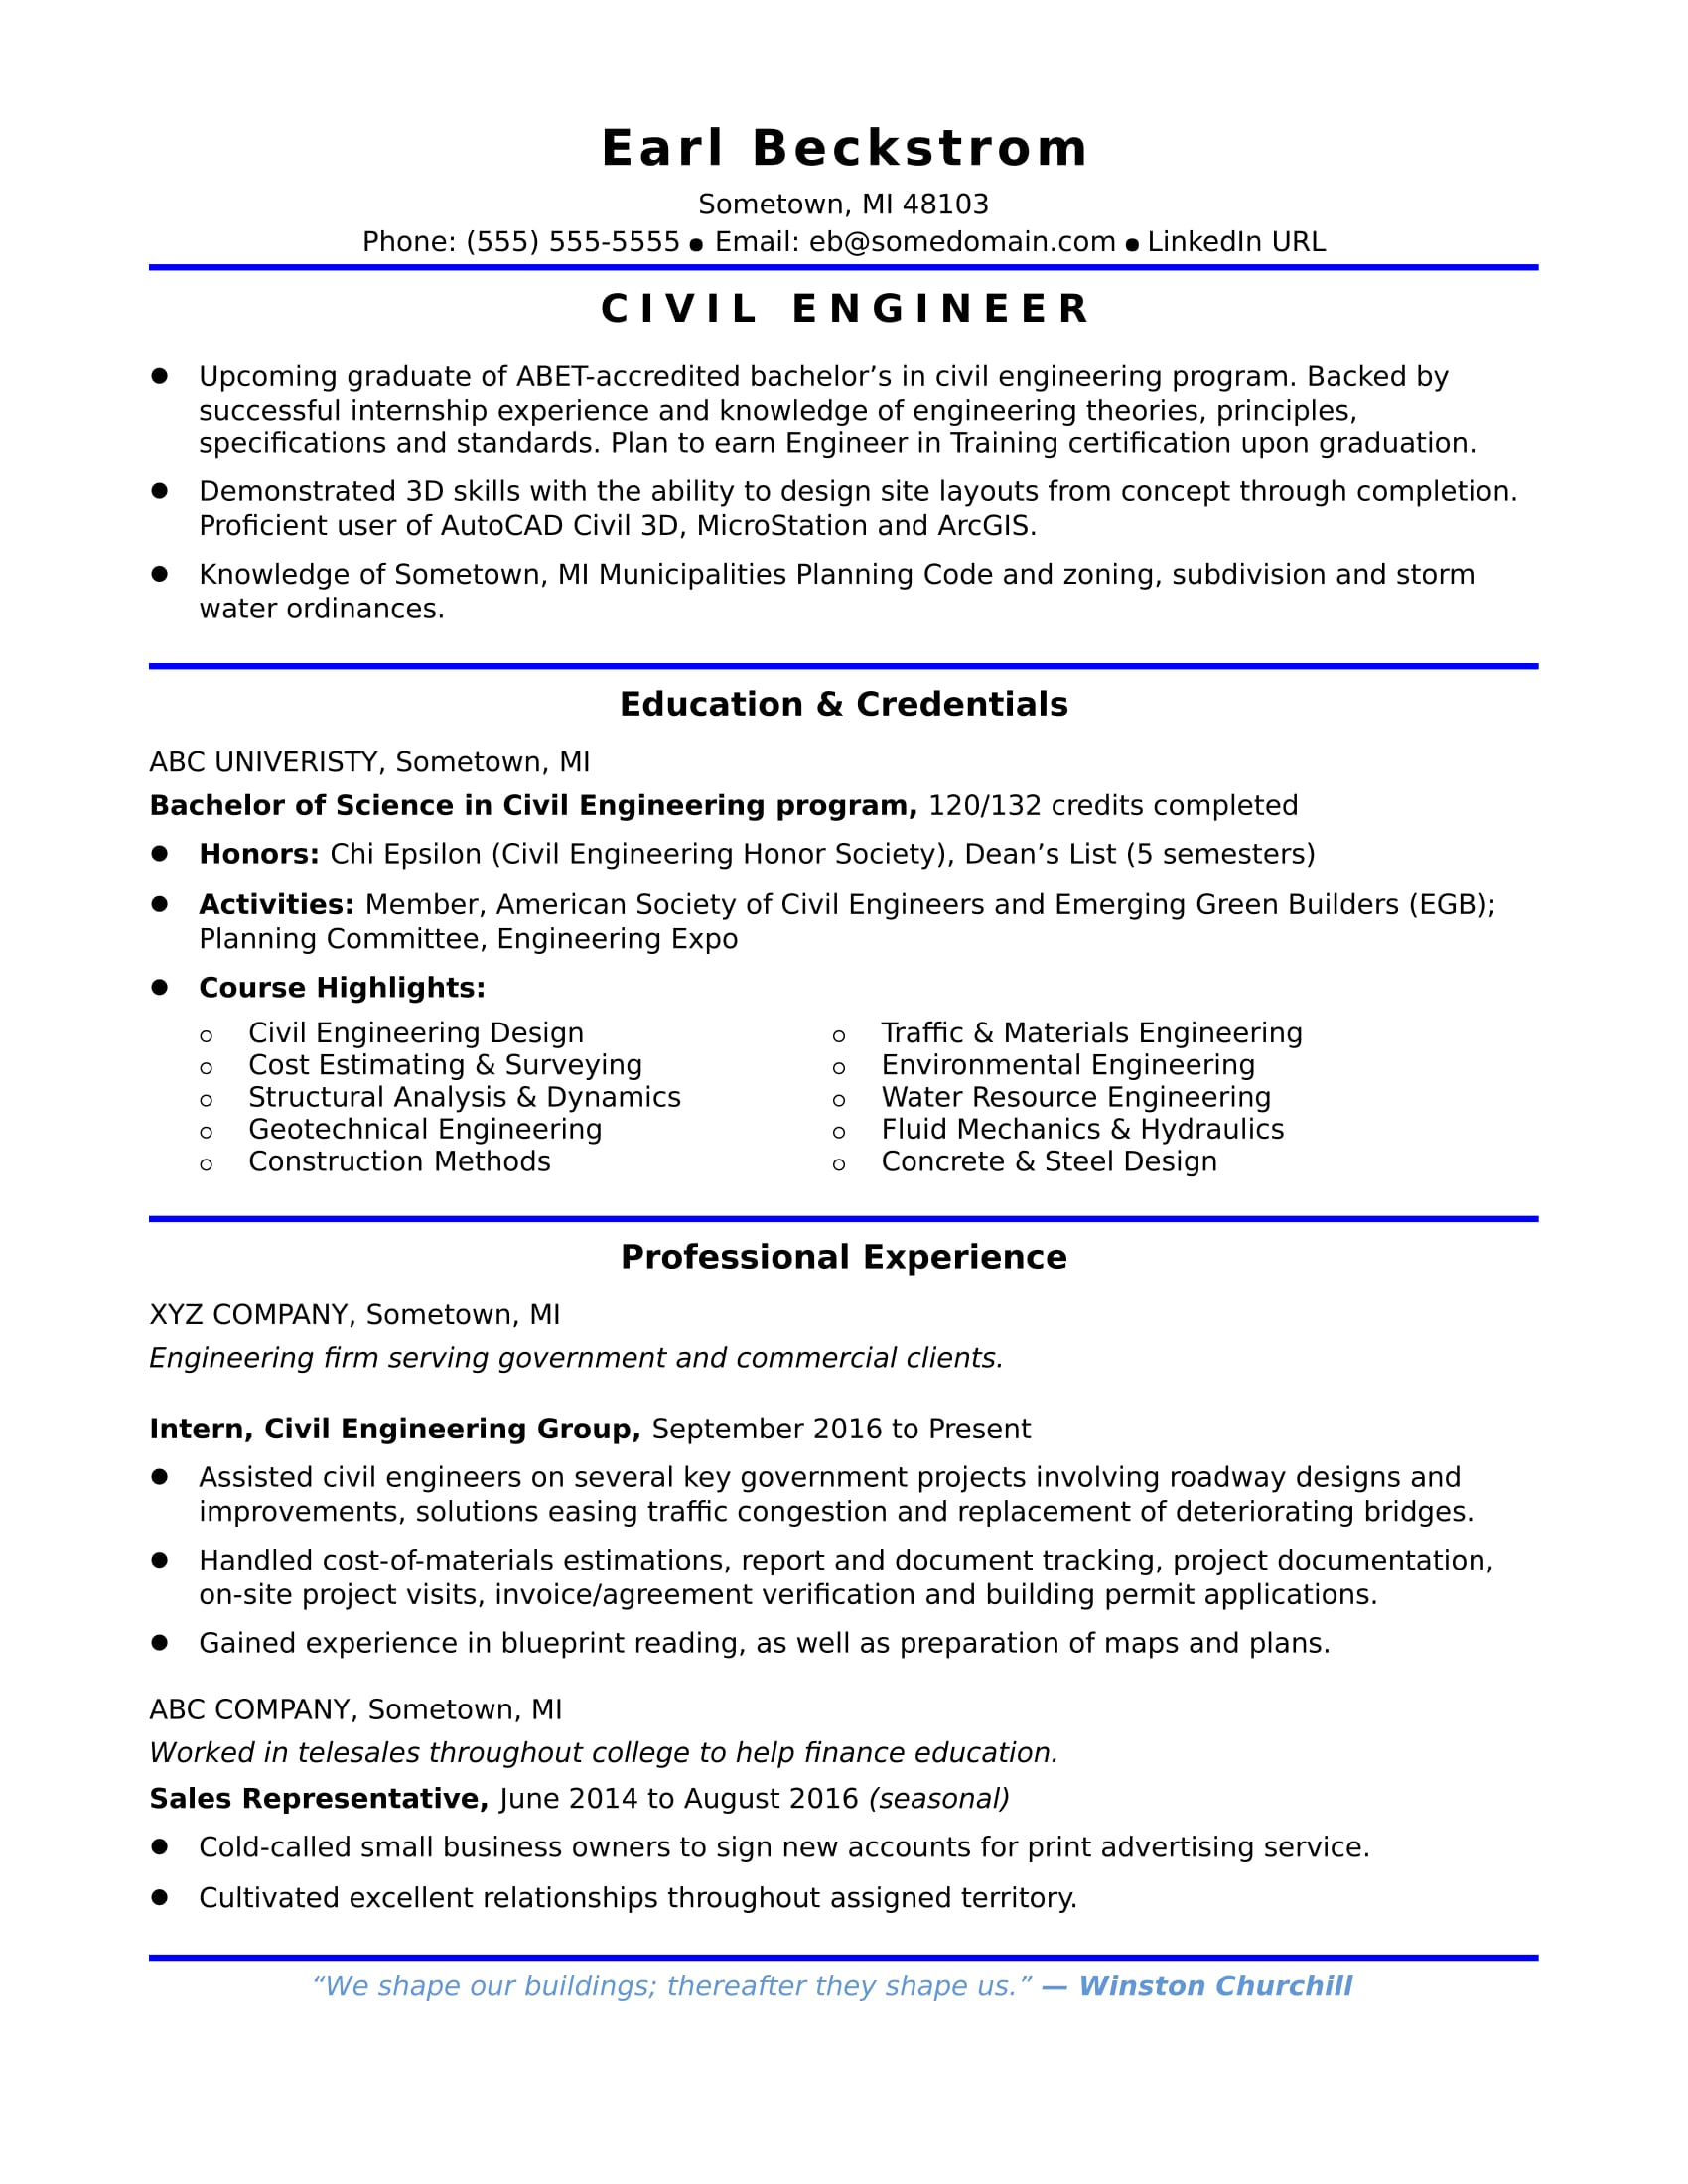 Sample resume for an entry-level civil engineer